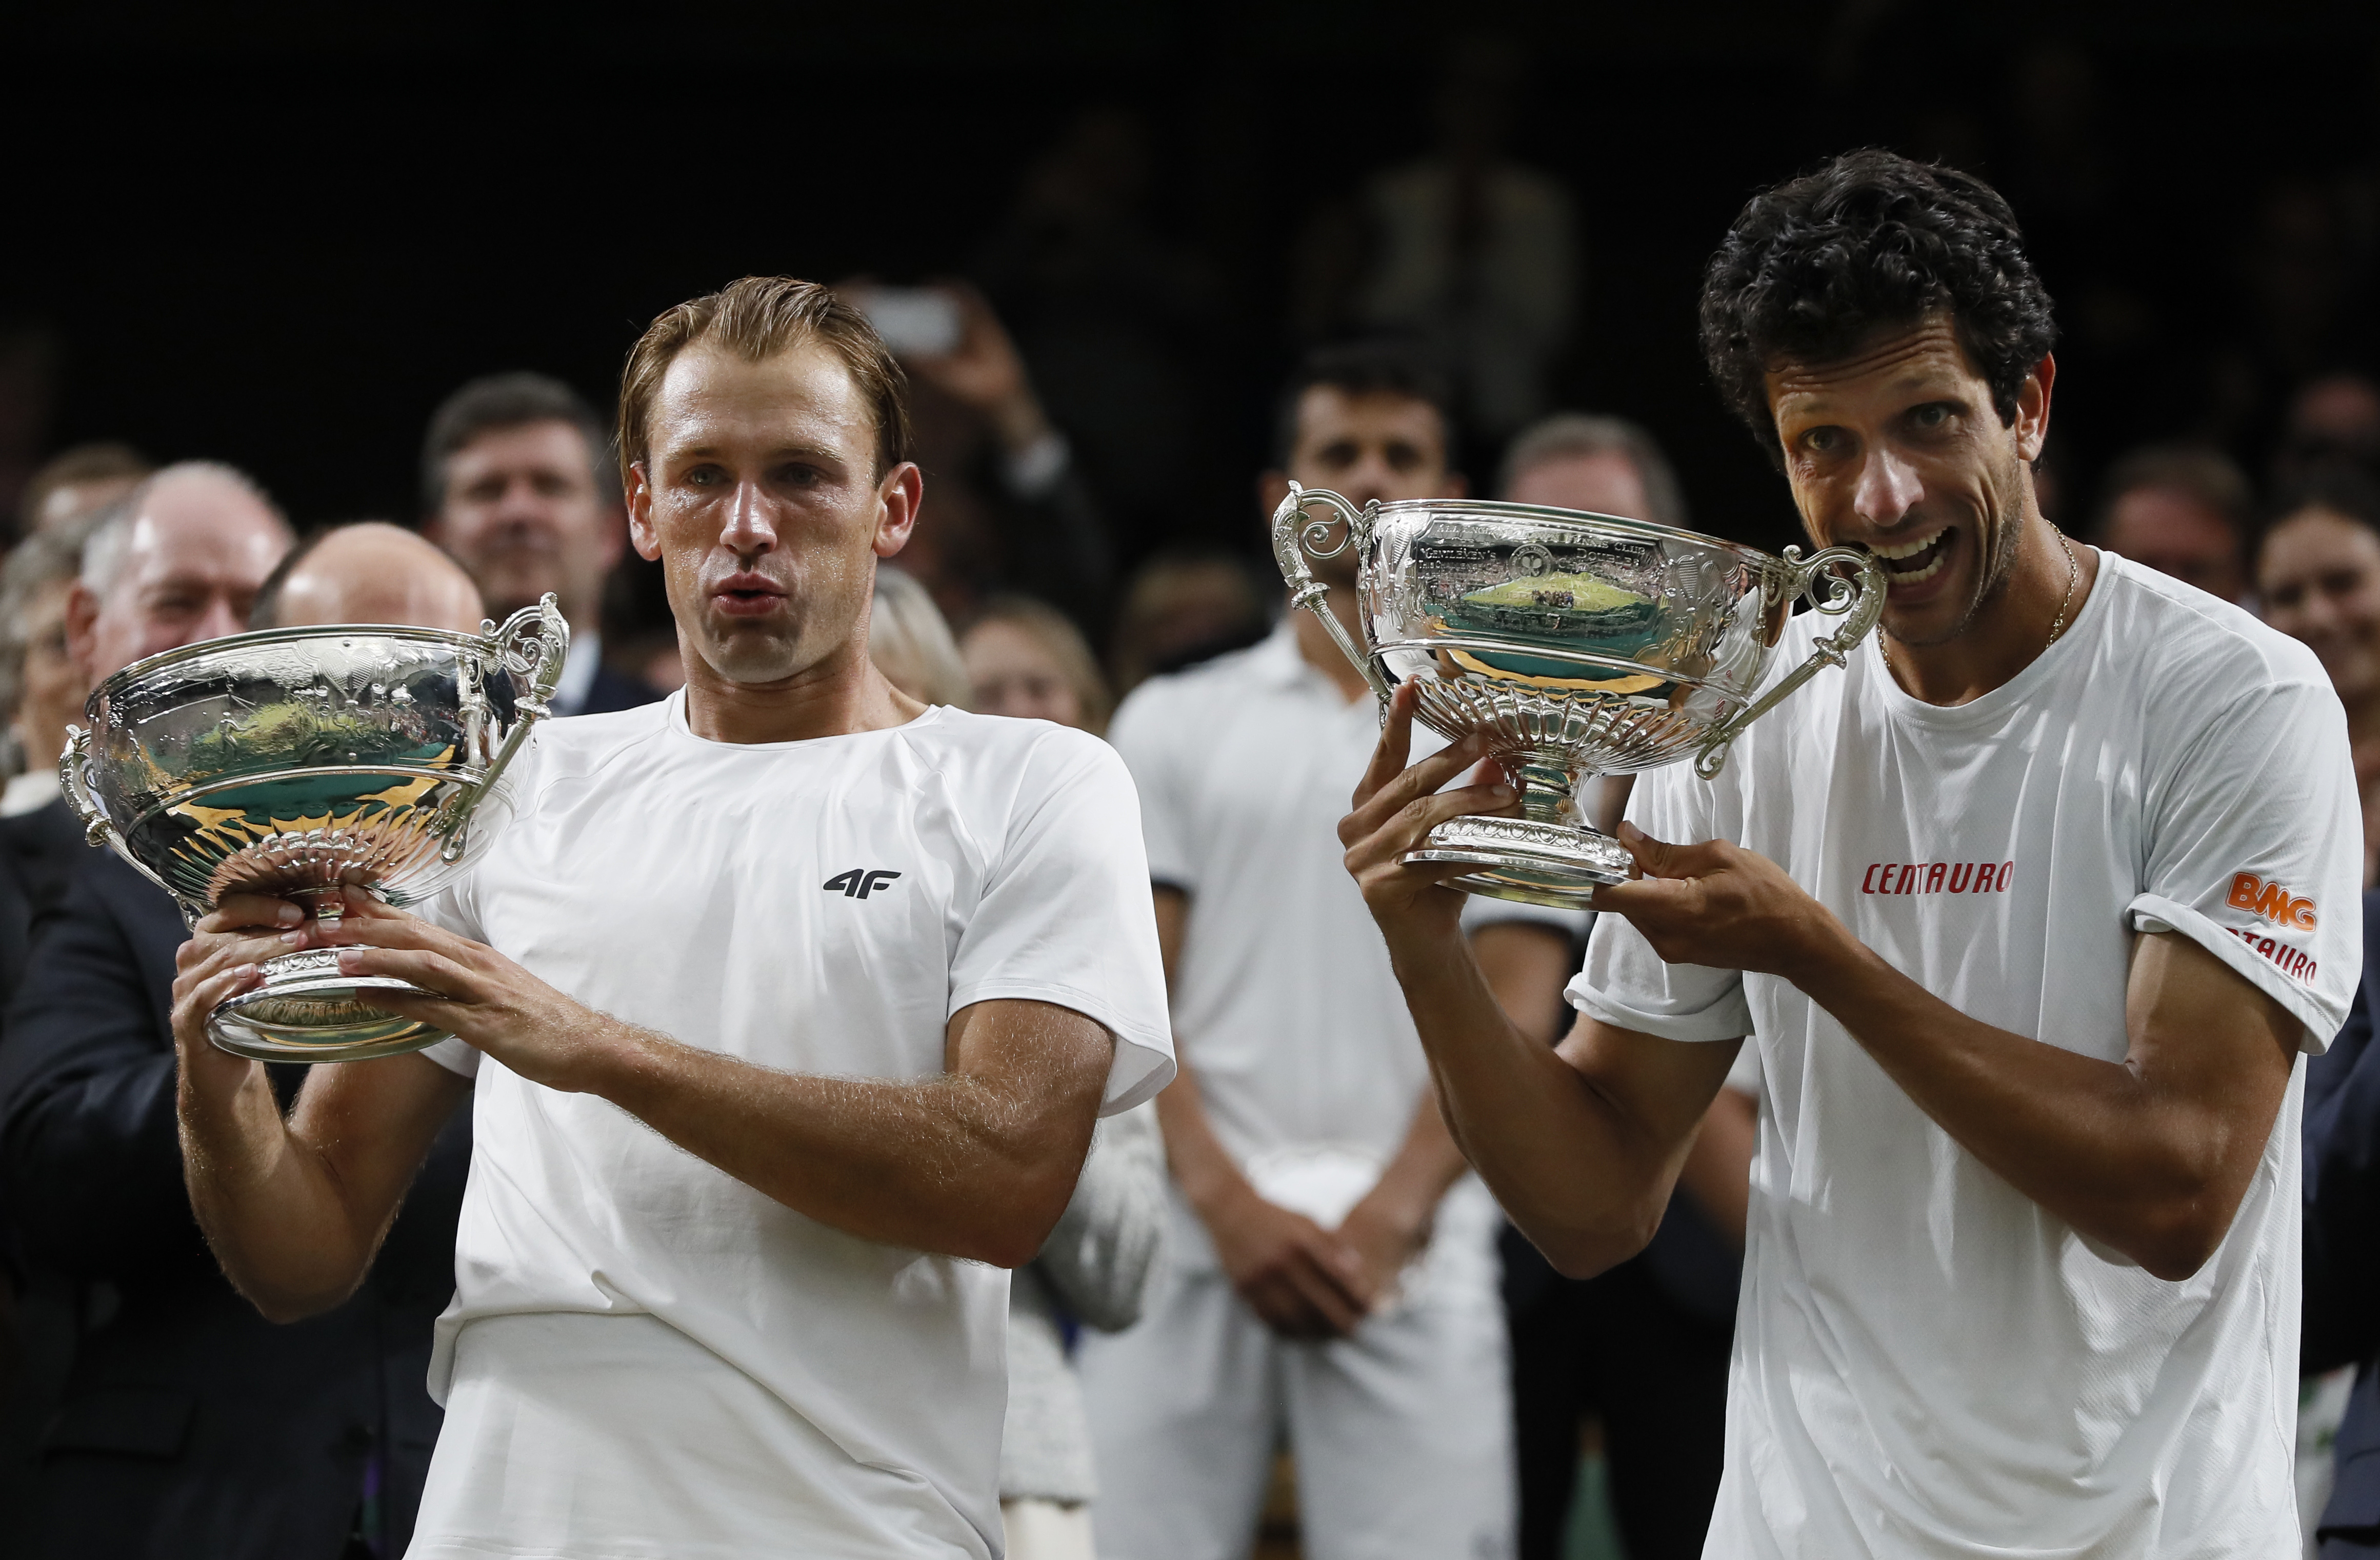 Poland's Lukasz Kubot, left, and Brazil's Marcelo Melo hold up their winners trophies and pose for the media after defeating Austria's Oliver Marach, and Croatia's Mate Pavic in the Men's Doubles final match on day twelve at the Wimbledon Tennis Champions